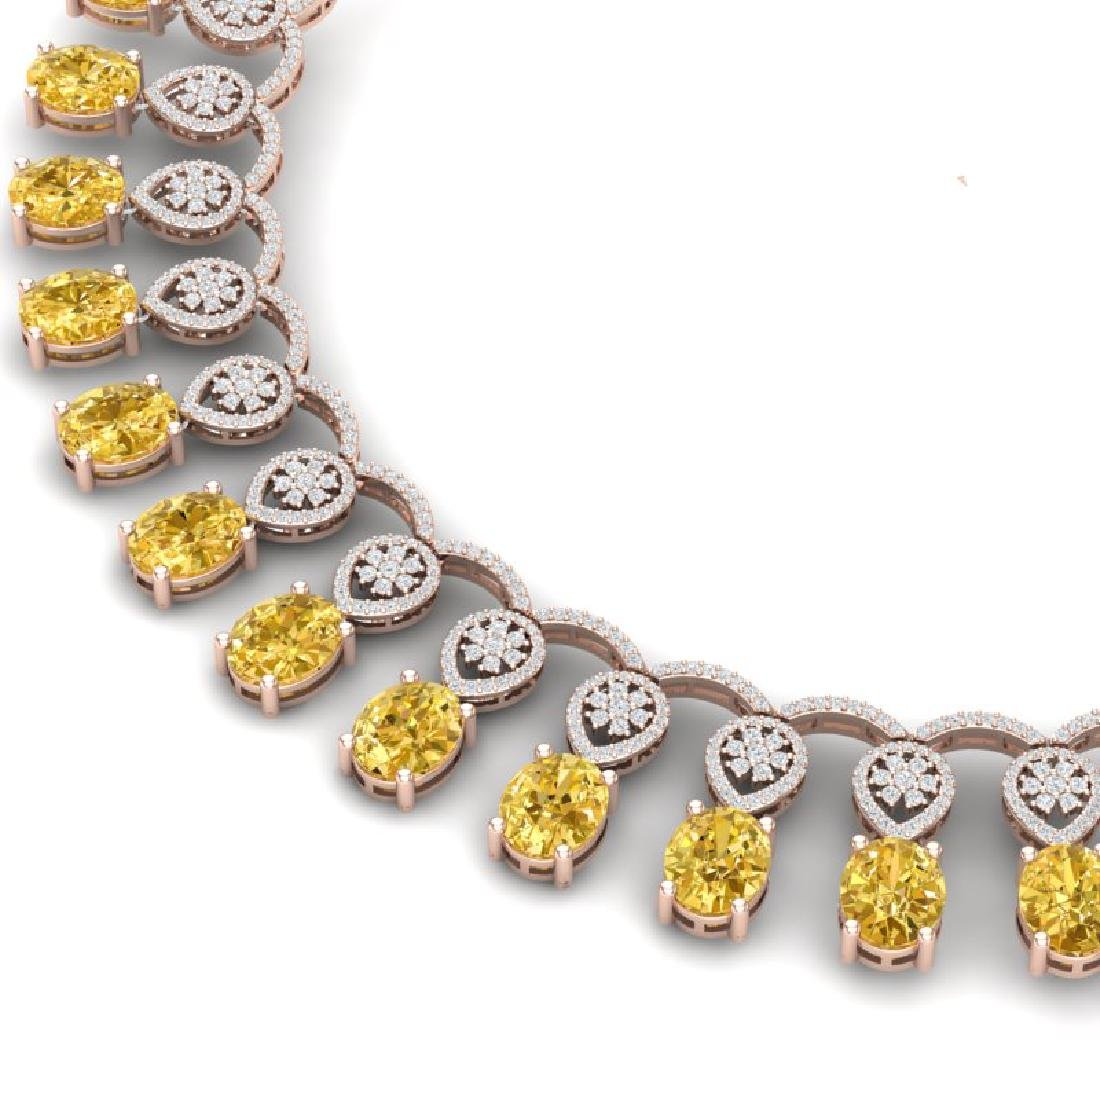 51.57 CTW Royalty Canary Citrine & VS Diamond Necklace - 2